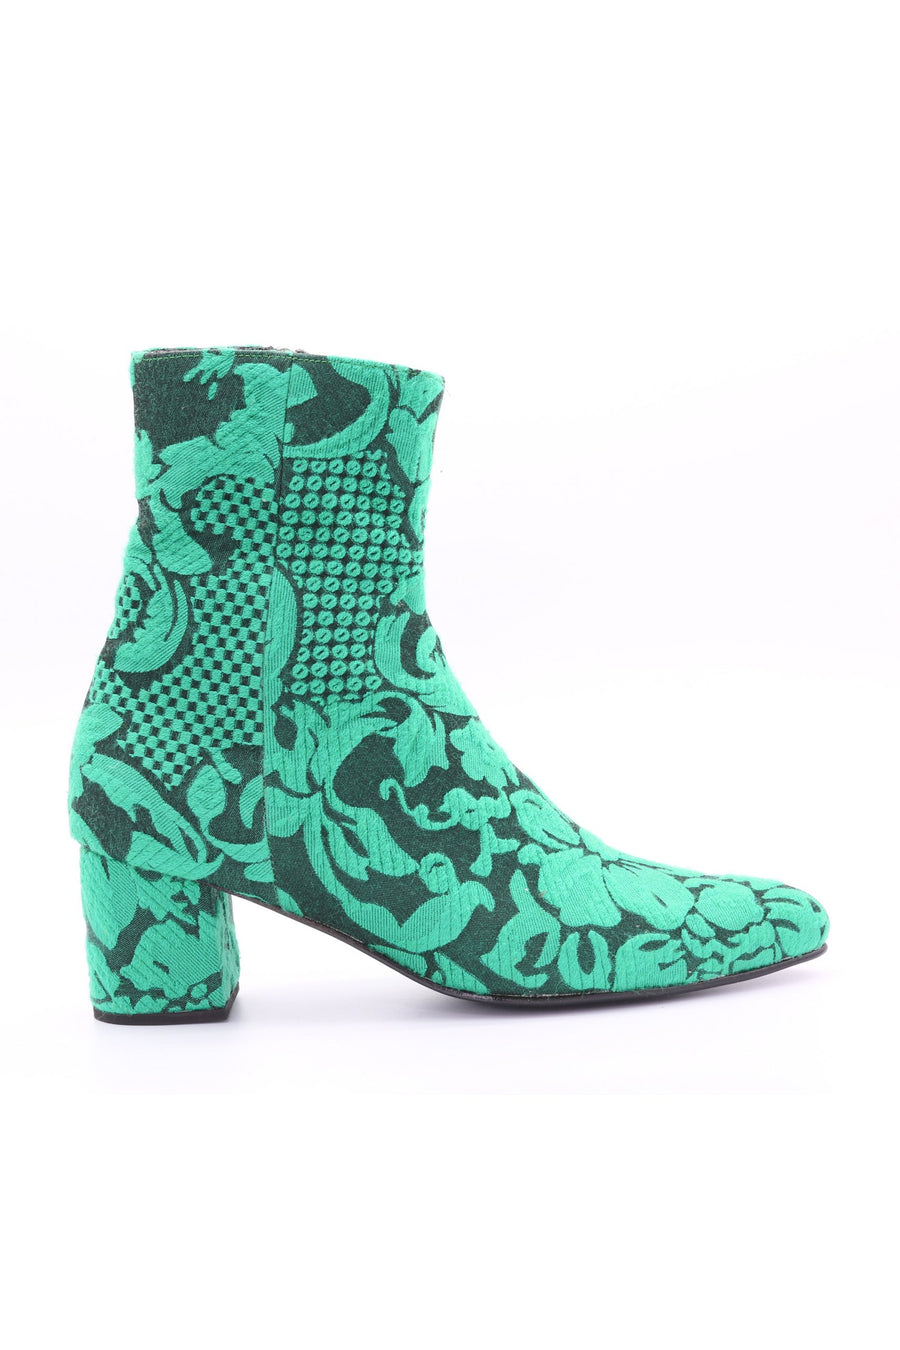 MOMO NEW YORK FOREST GREEN COTTON EMBROIDERED ANKLE BOOT